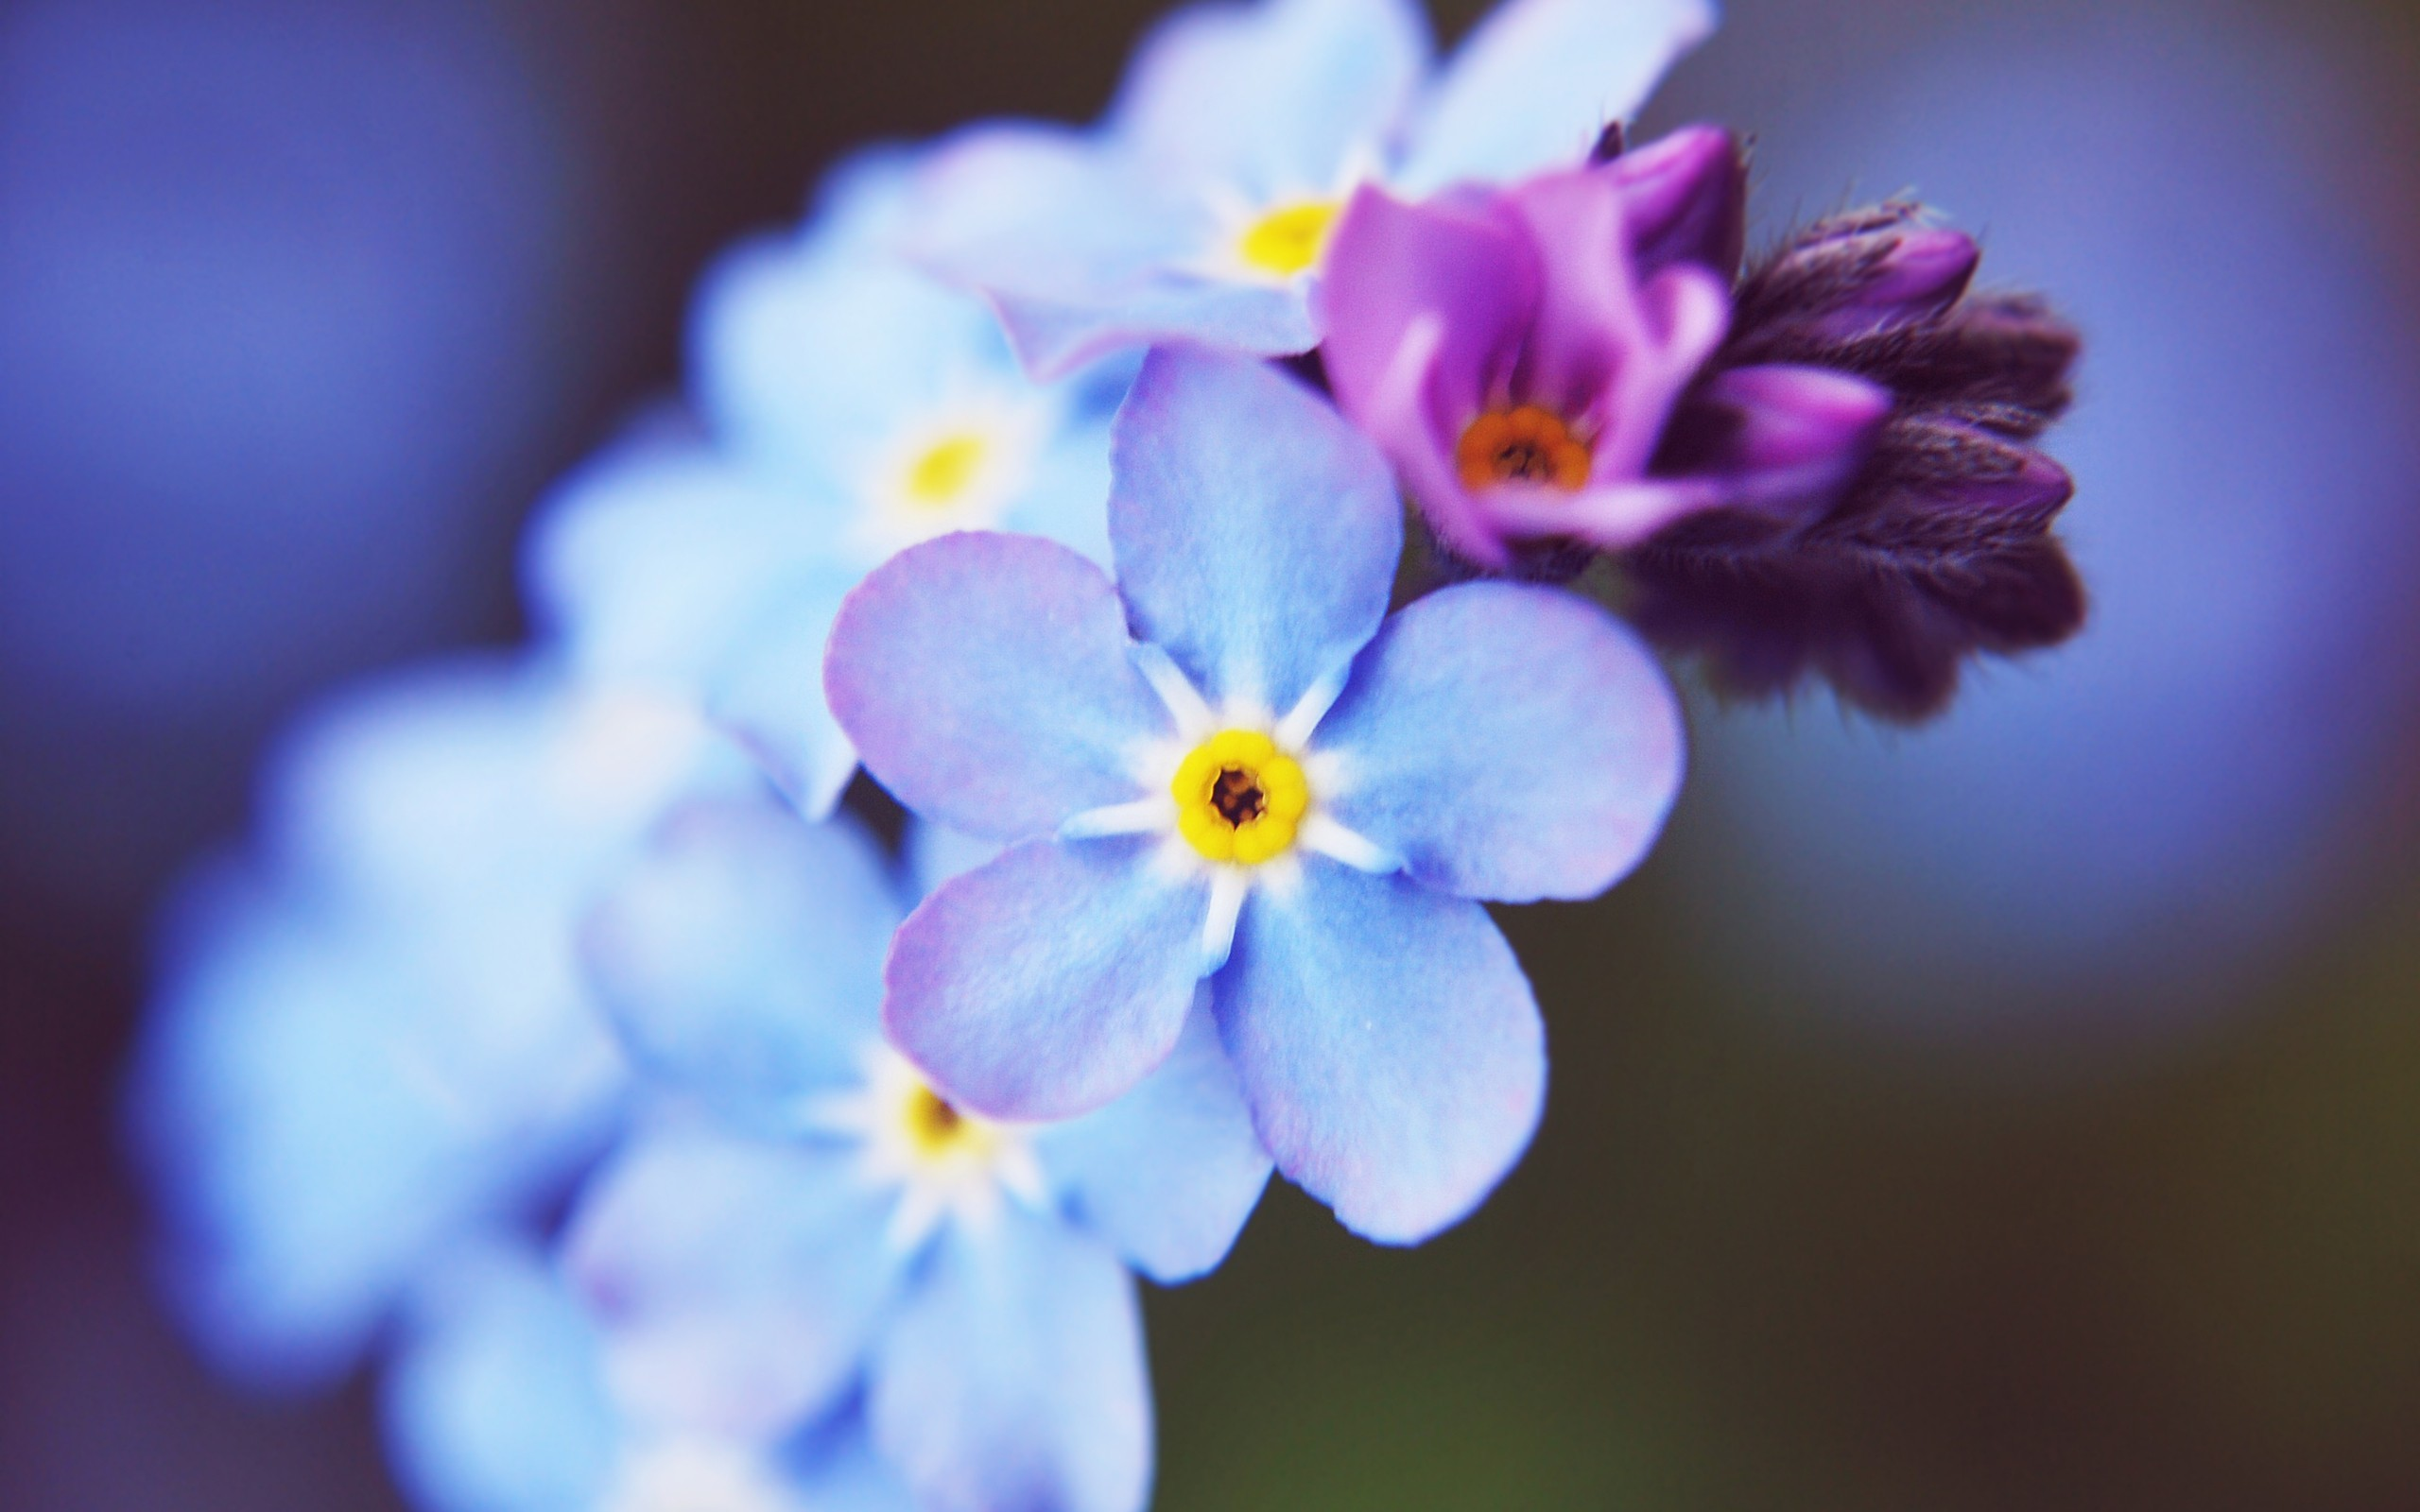 macro Flowers nature blue flowers Forget-me-nots HD Wallpaper